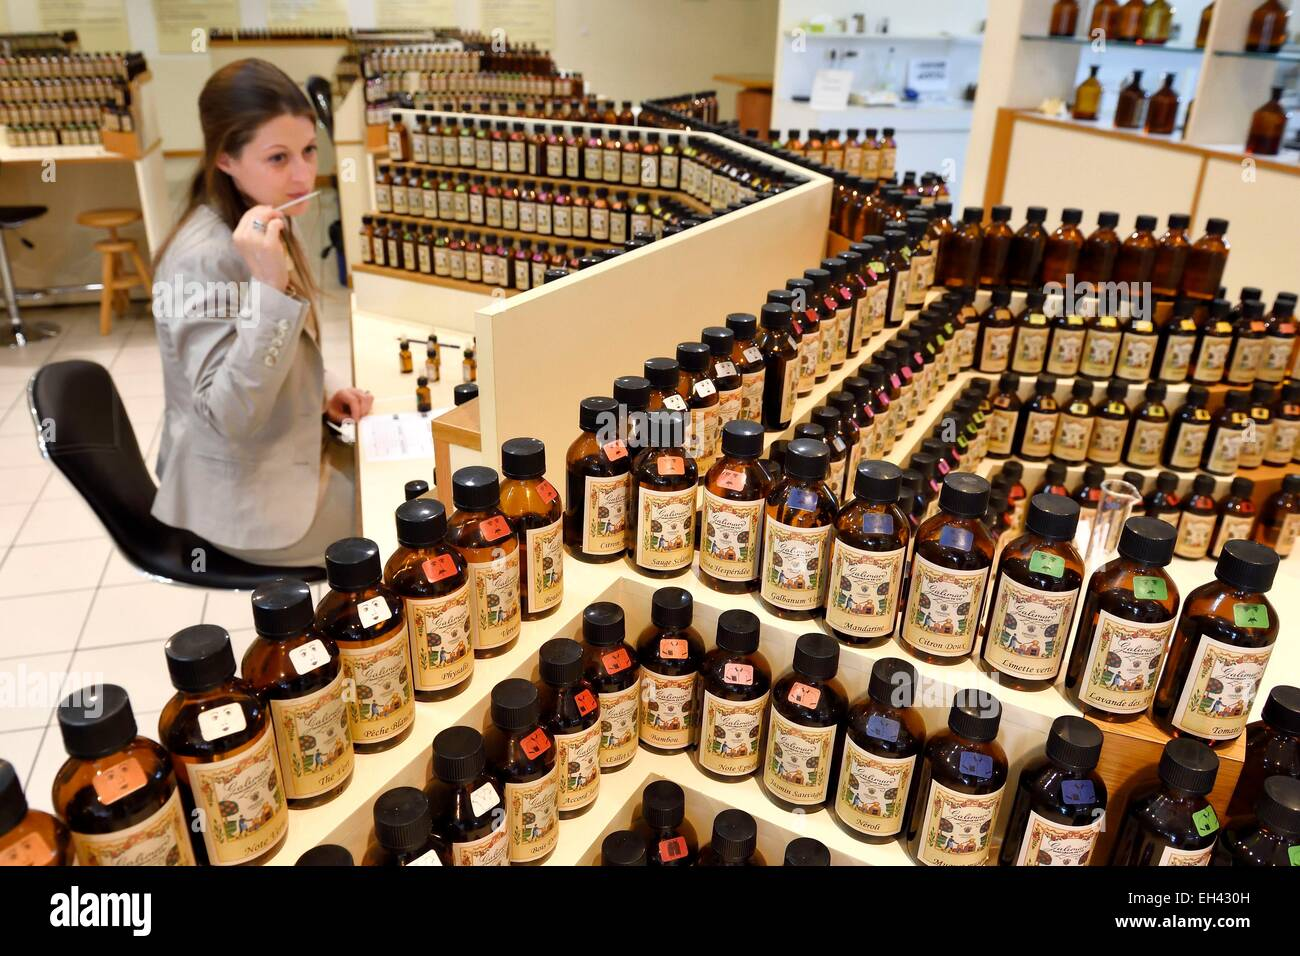 France, Alpes Maritimes, Grasse, Studio des Fragrances Galimard, perfume organ, perfume creation by a nose (expert - Stock Image